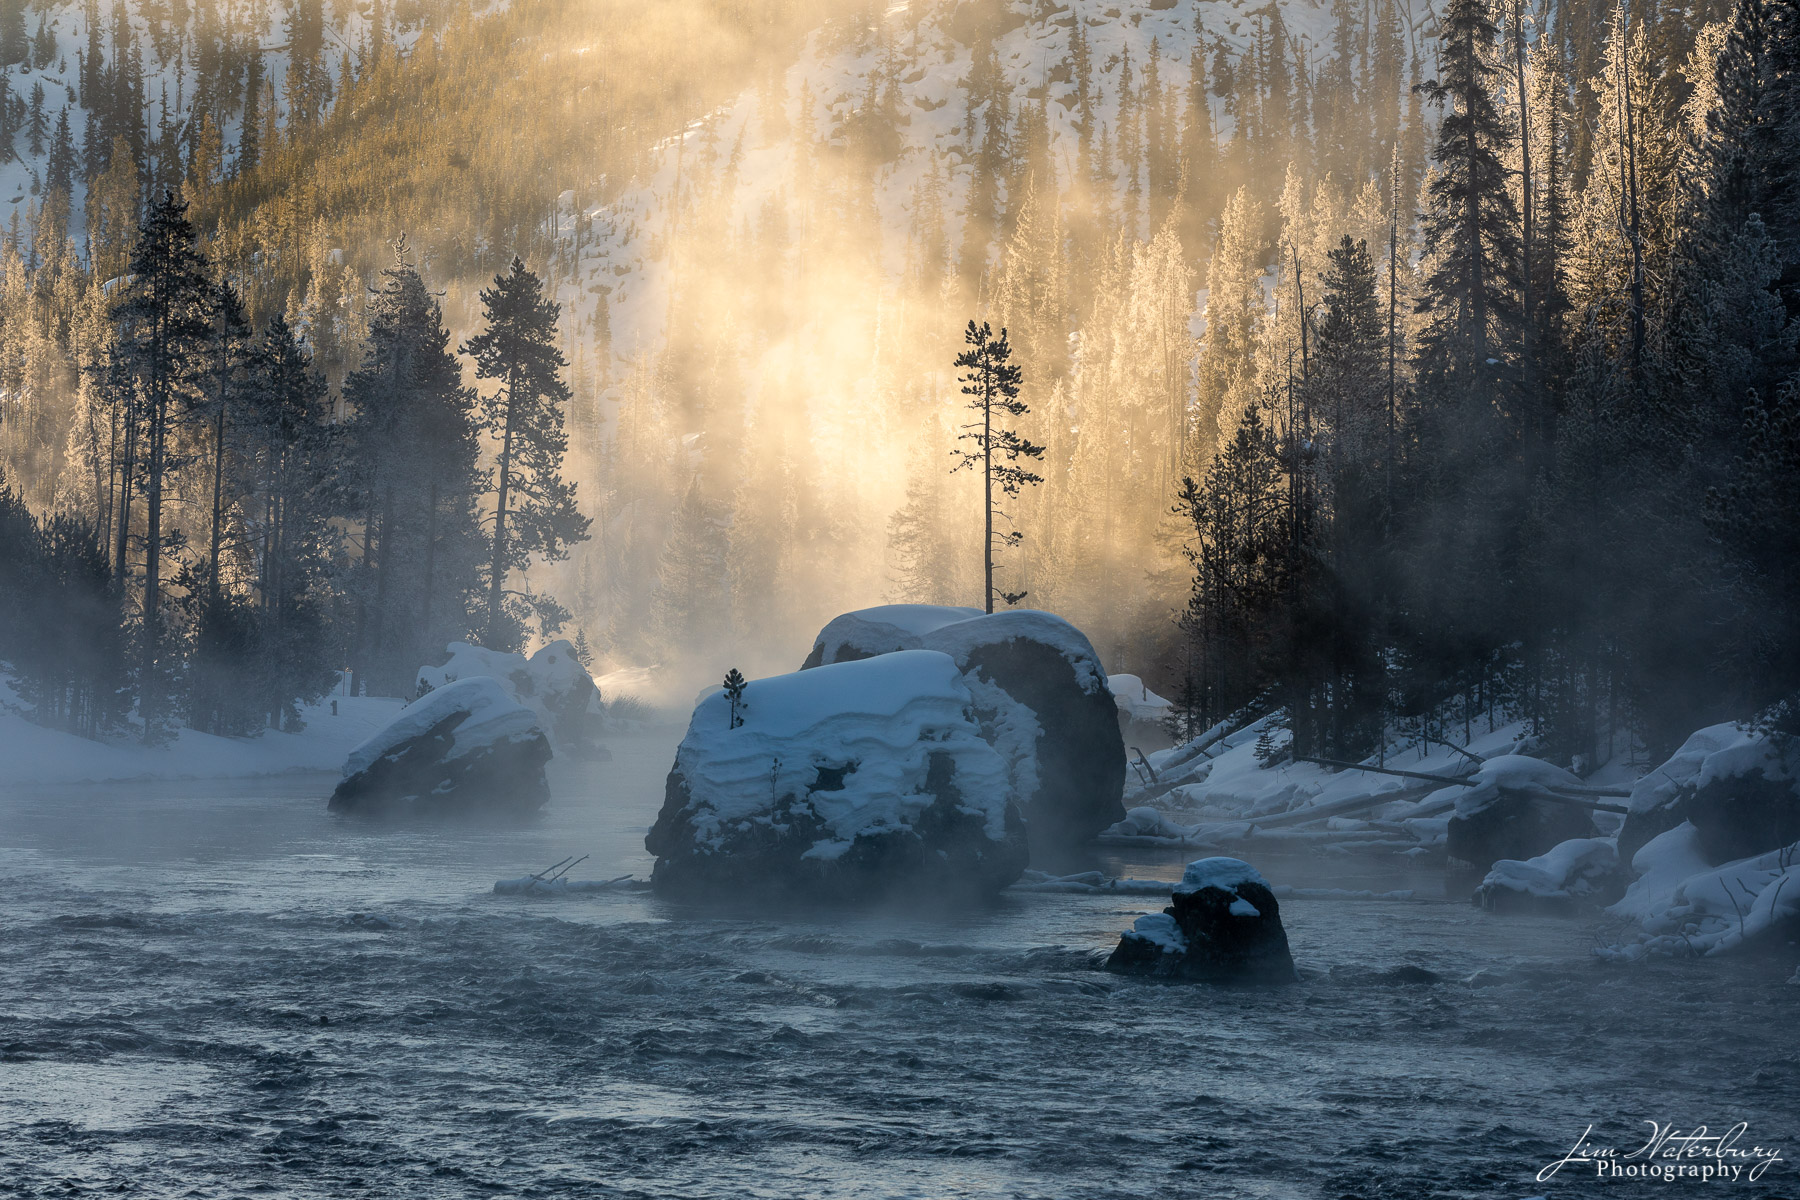 A single tree grows from a rock in the middle of a river in Yellowstone, backlit by mist illuminated by the rising sun.